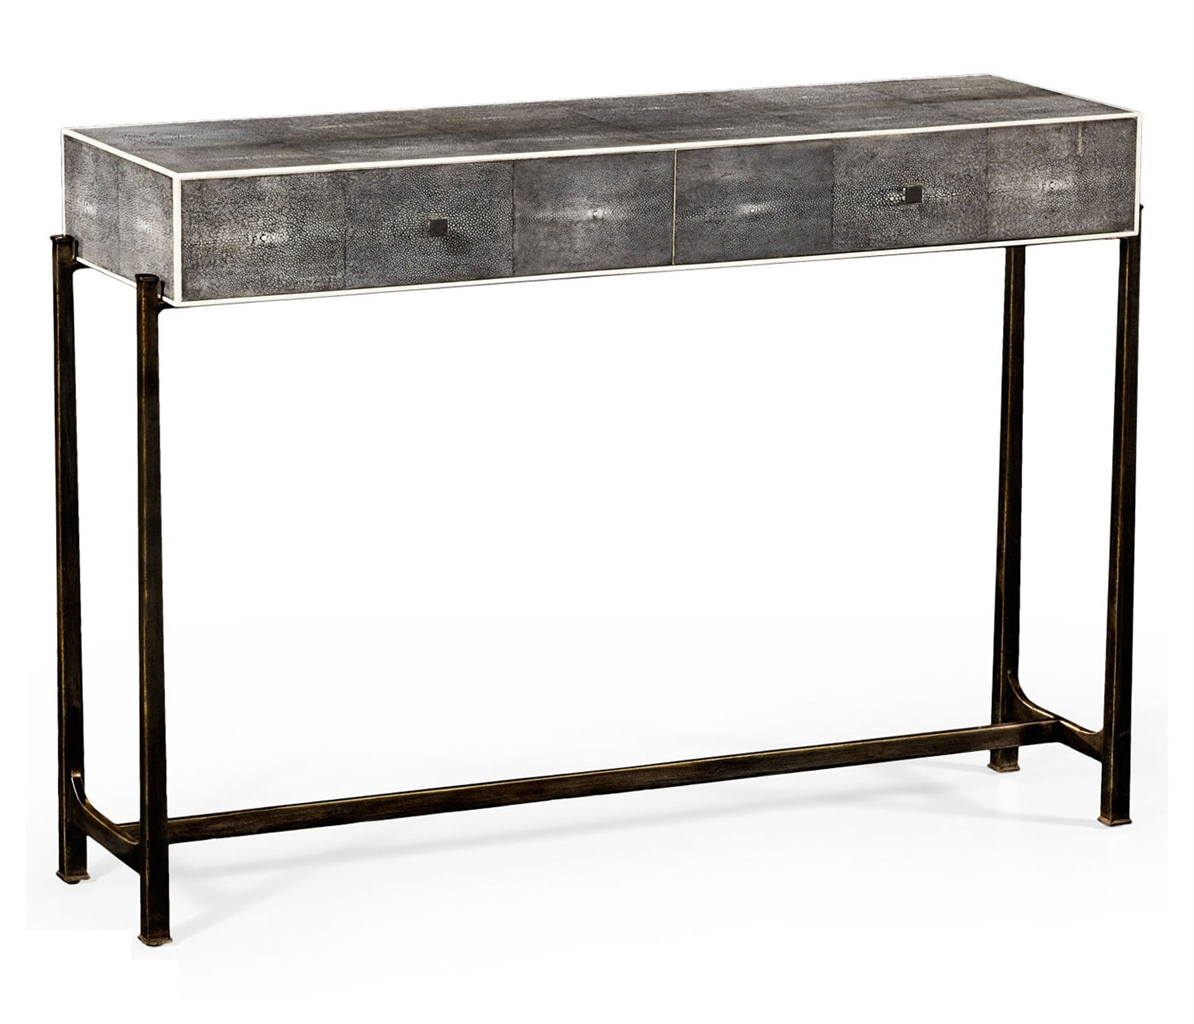 Contemporary styled wrought iron framed console table Metal console table